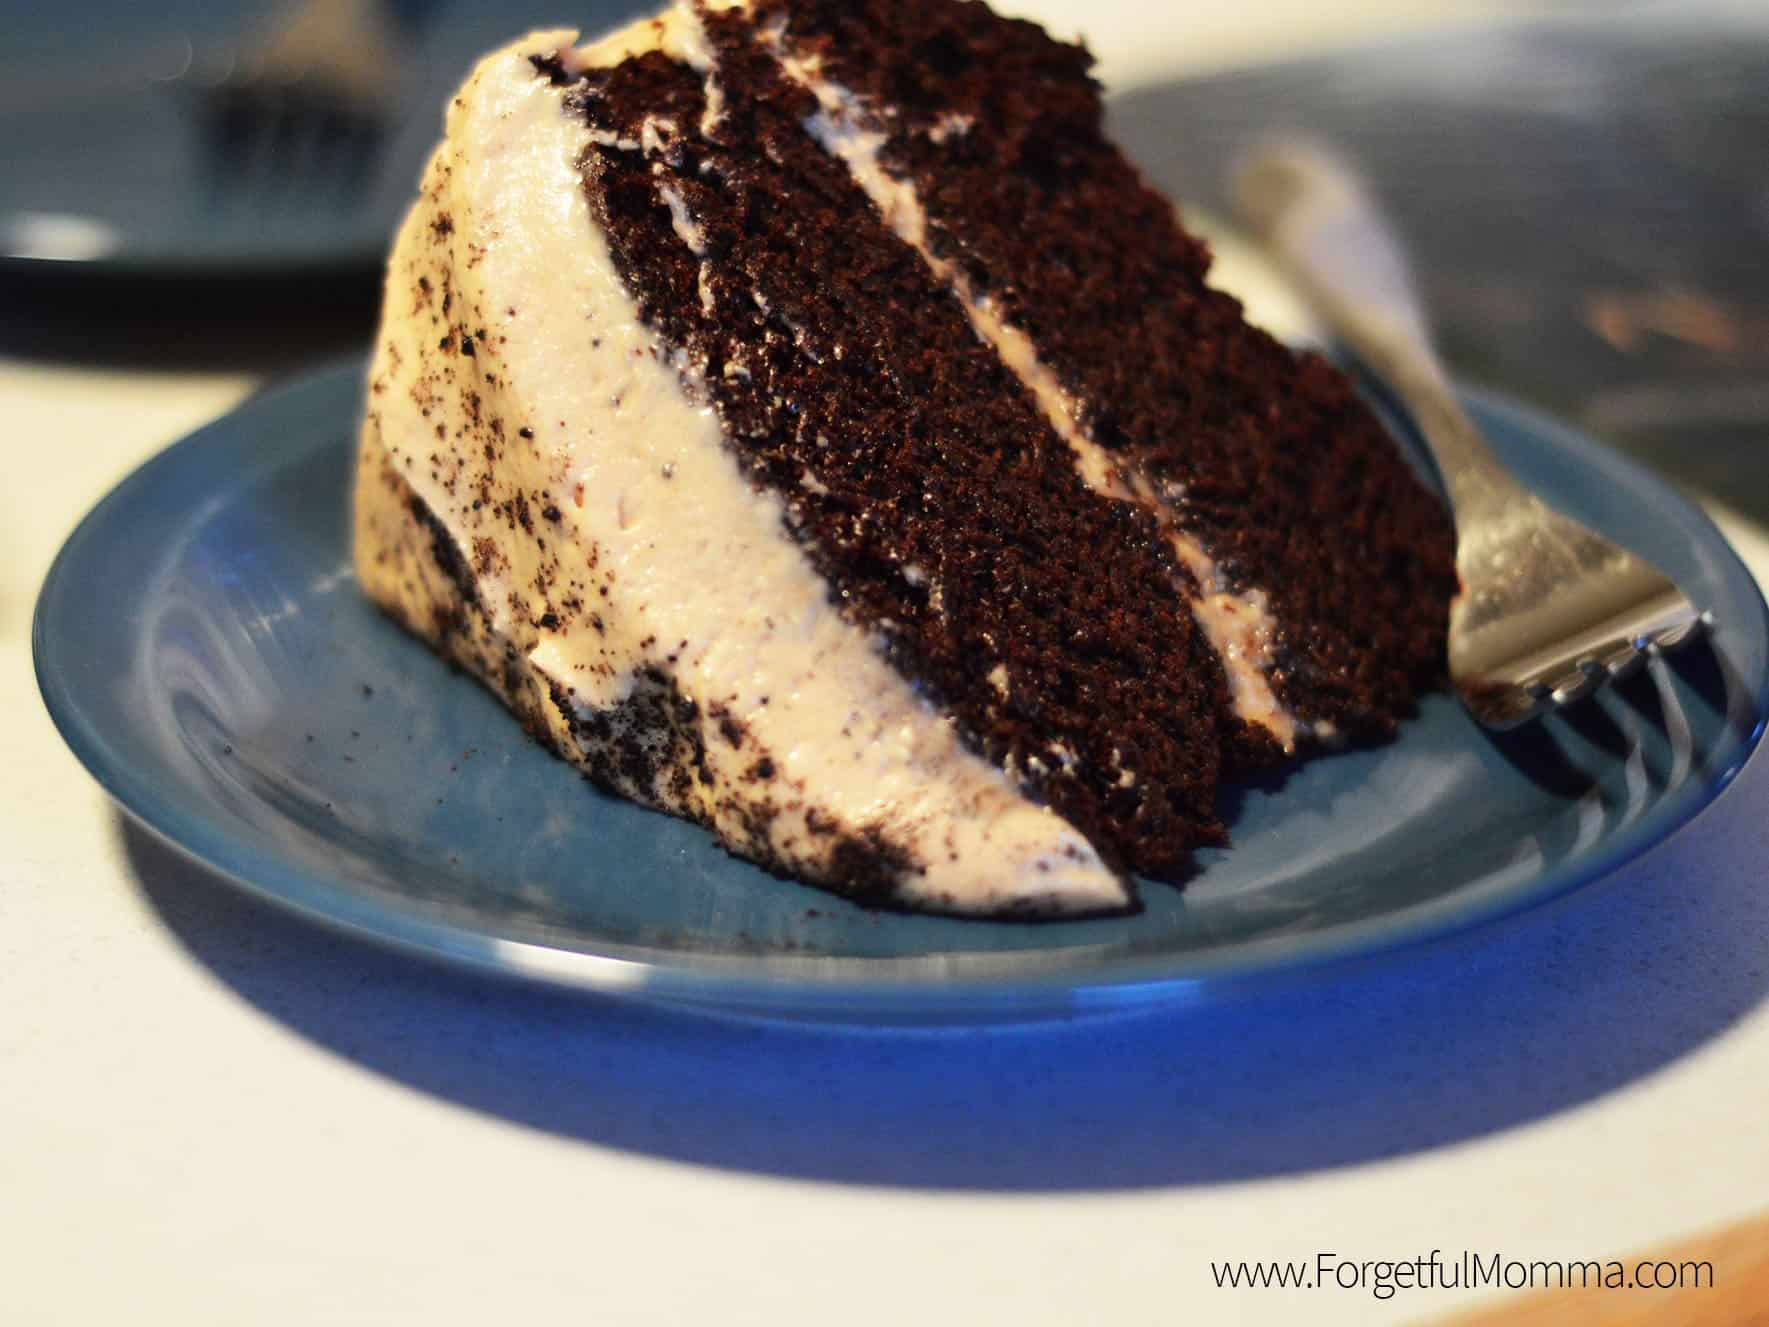 Chocolate Coffee Cake with Peanut Butter Frosting